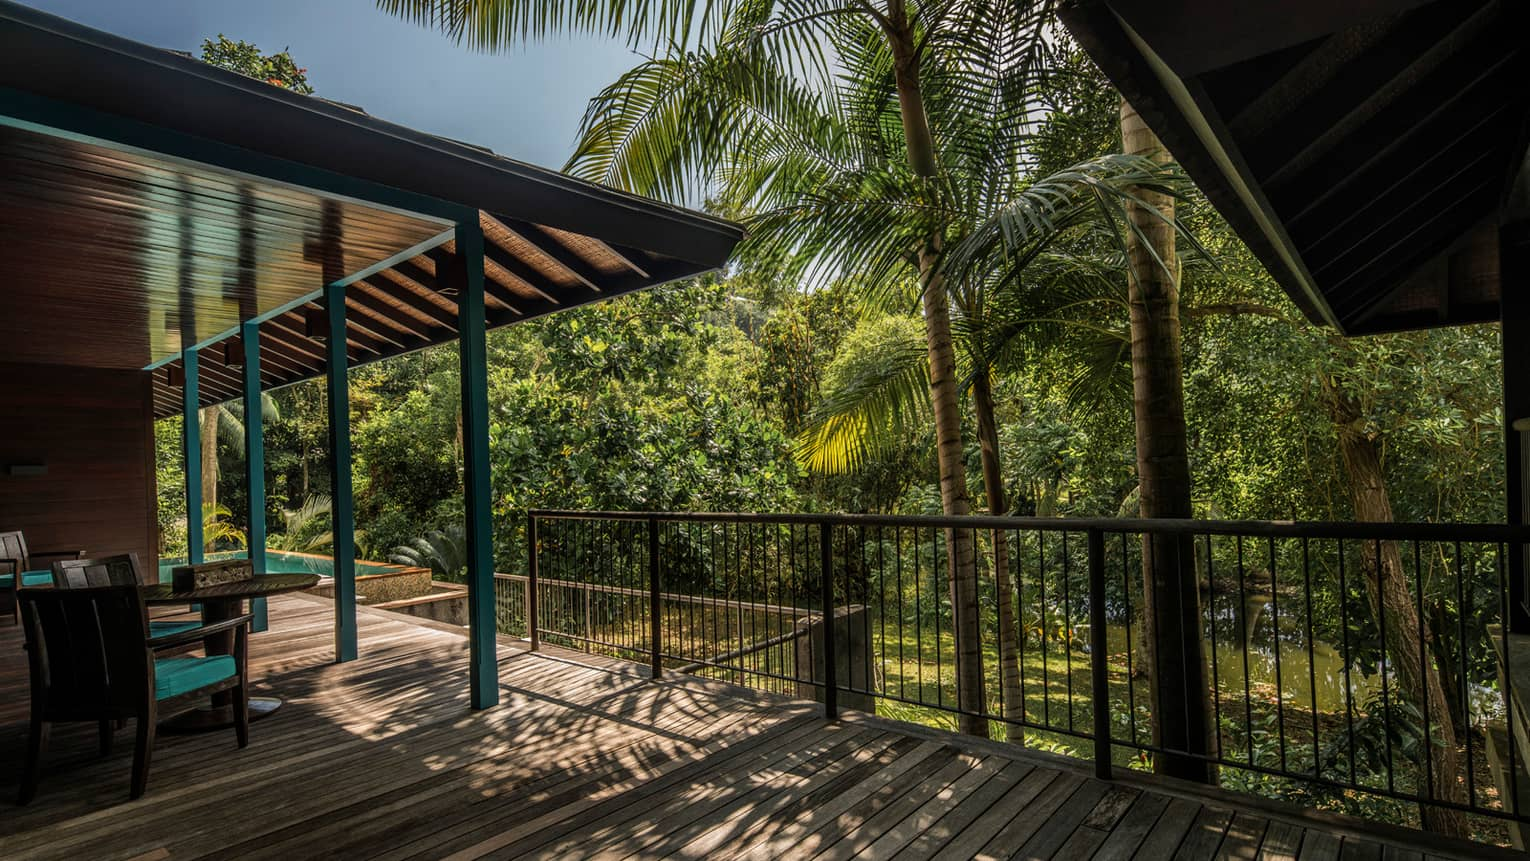 Palm trees cast shadows over Garden Villa wood deck, roof